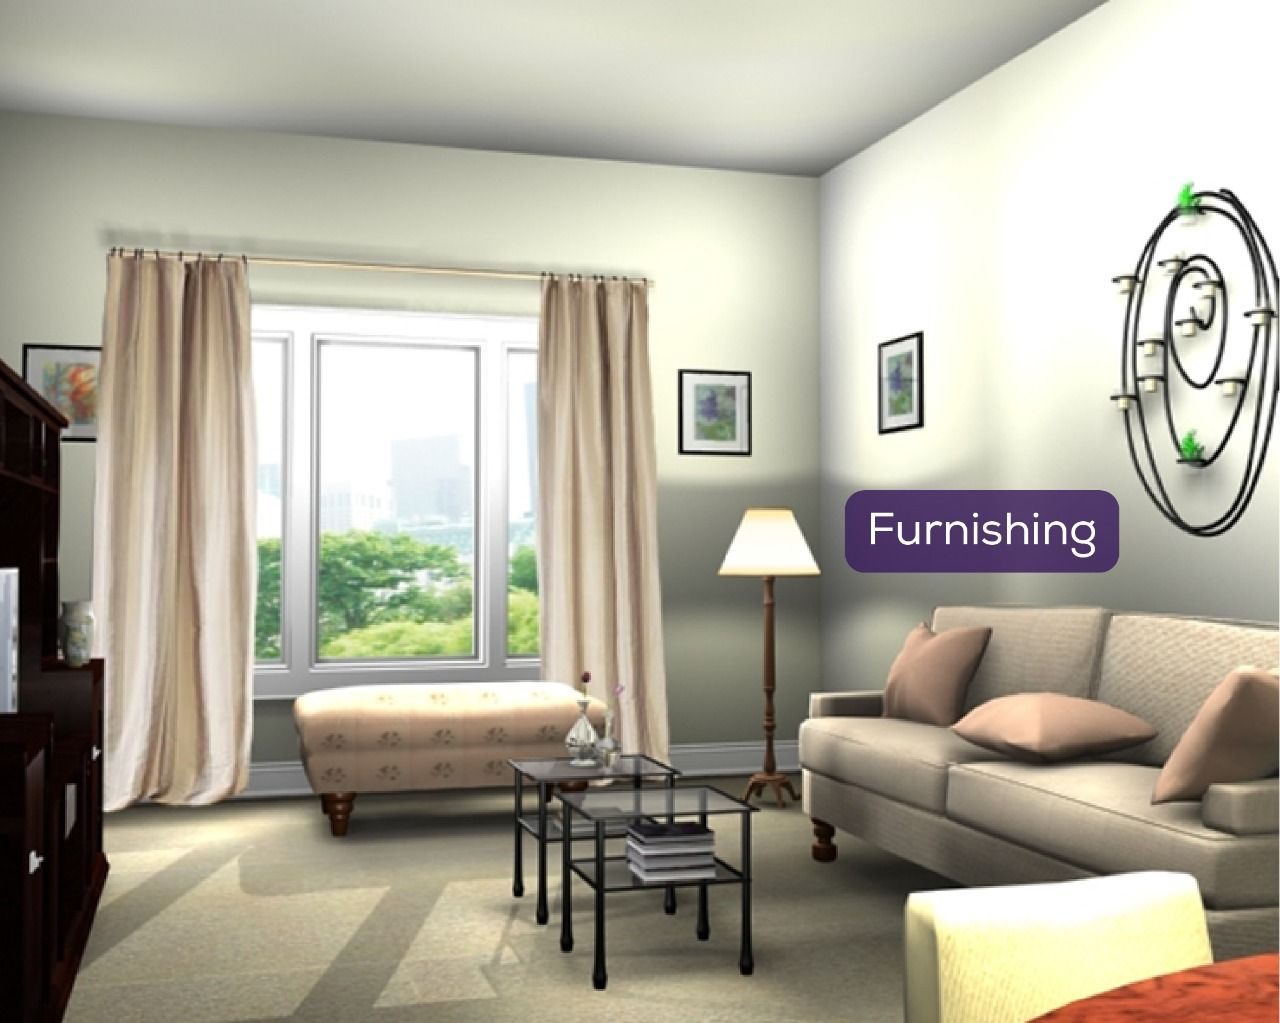 Proper-furnishing-of-the-Flat-Check-before-buying-flats-in-Mohali